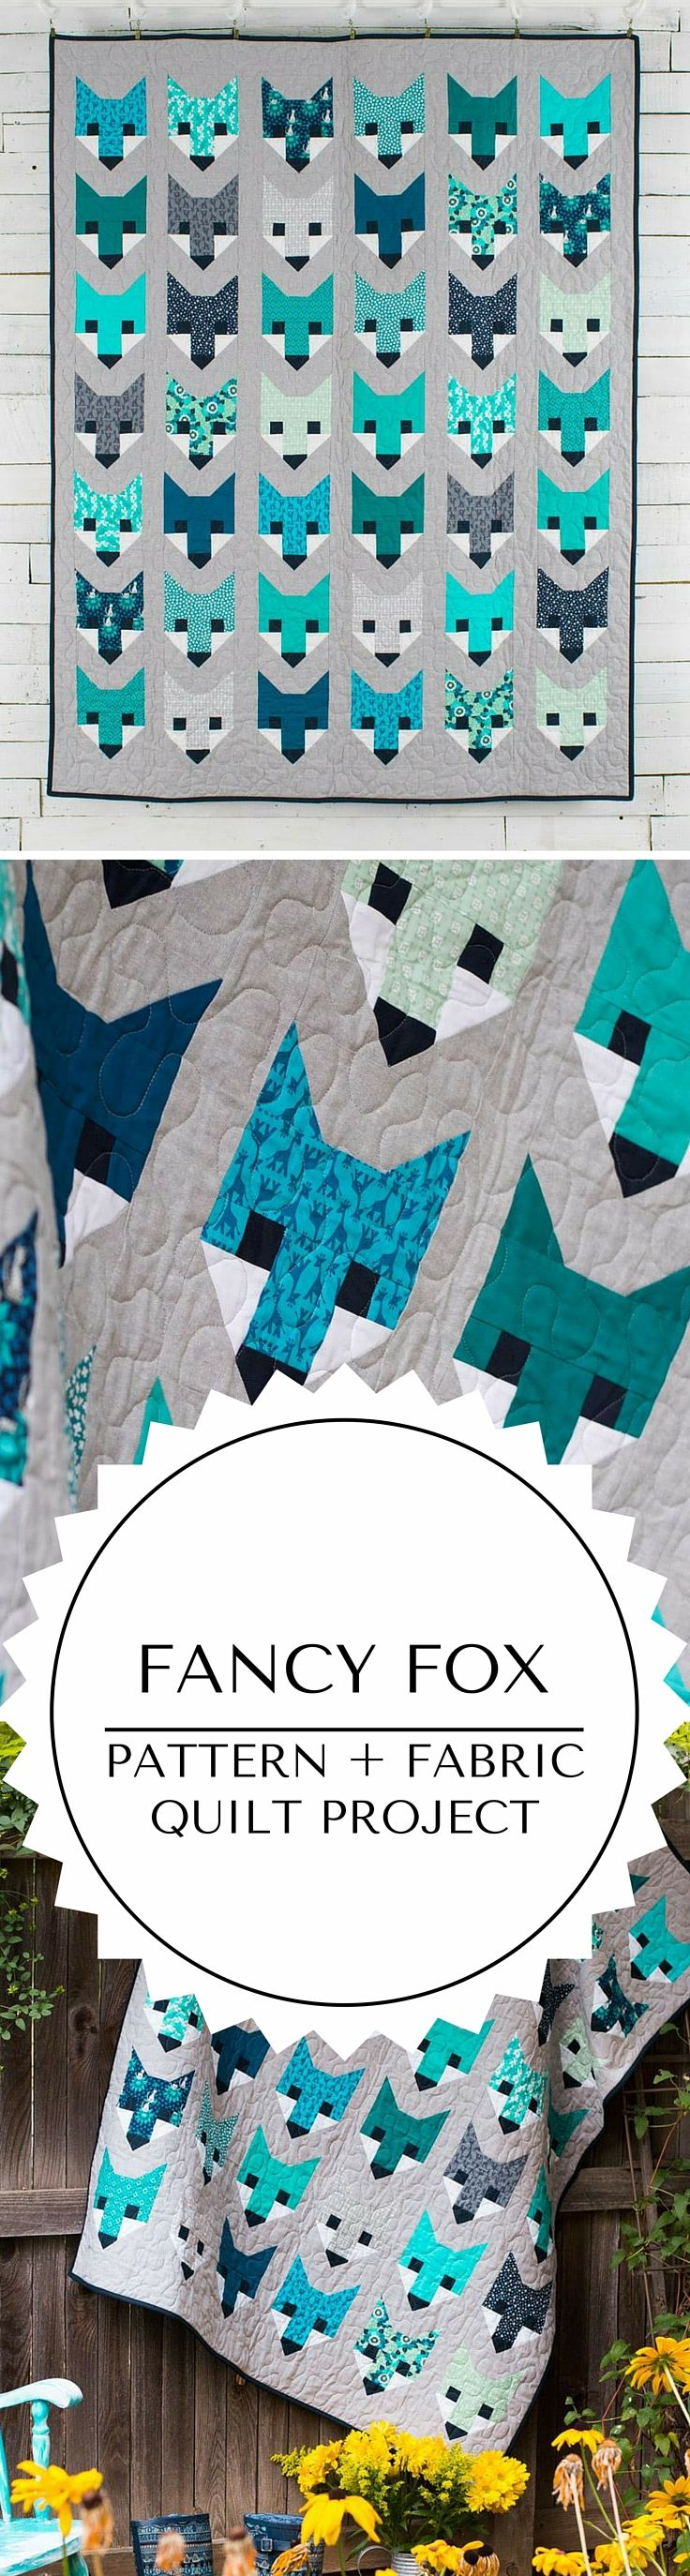 Fancy Fox quilt kit quilting project